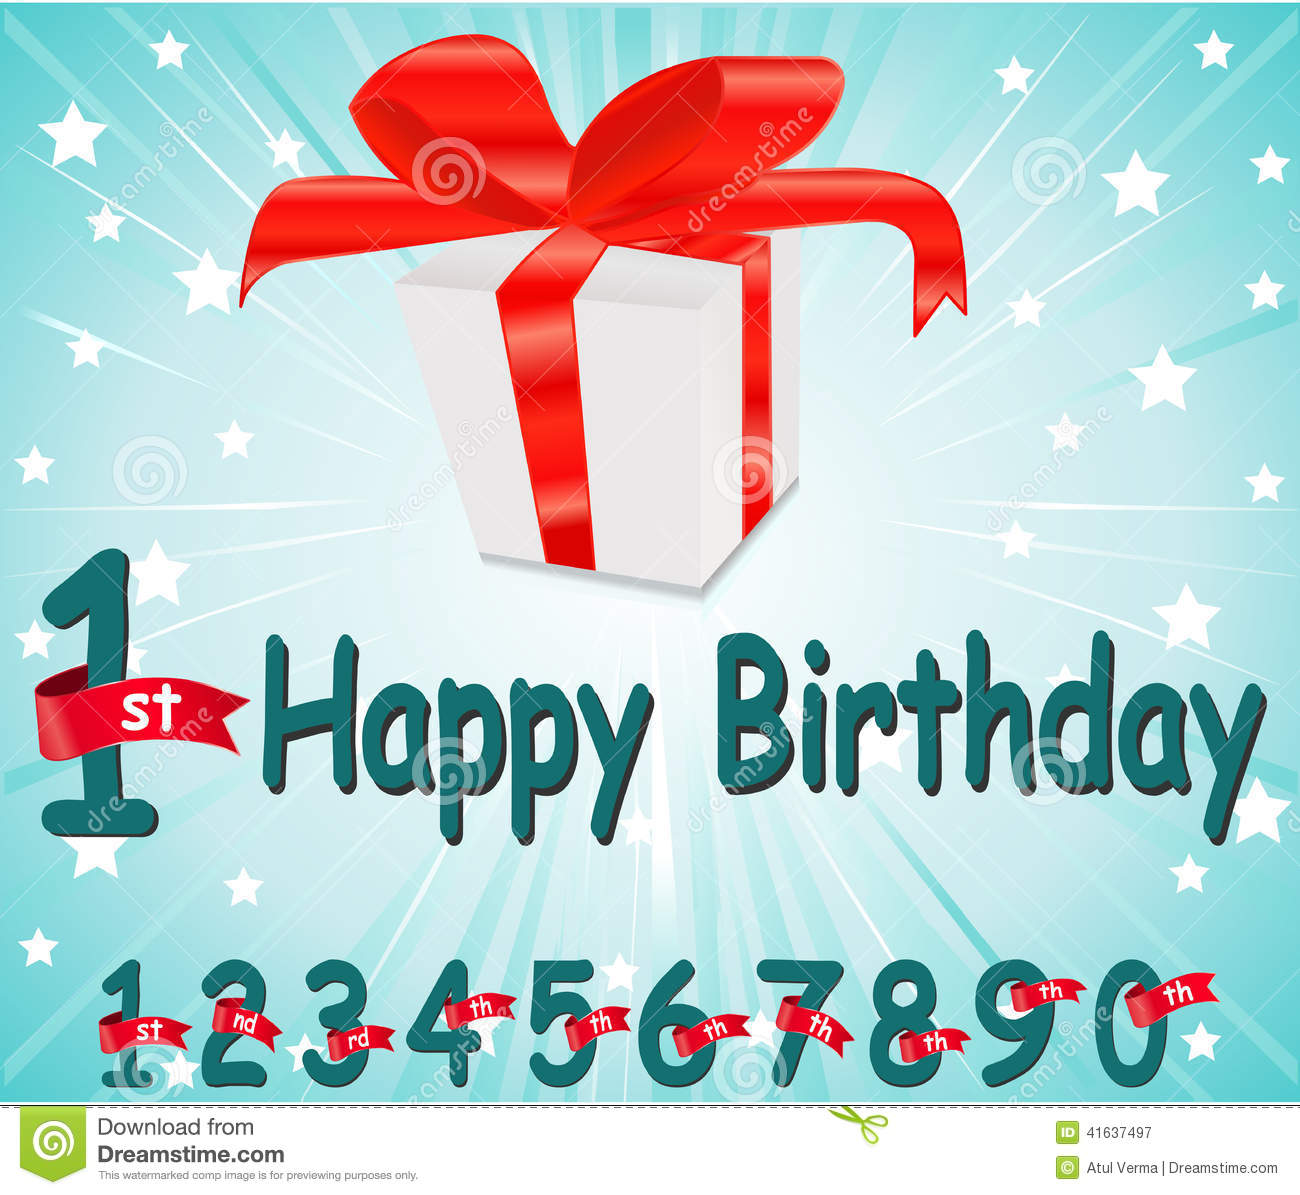 1 Year Happy Birthday Card With Gift And Colorful Background In Vector EPS10